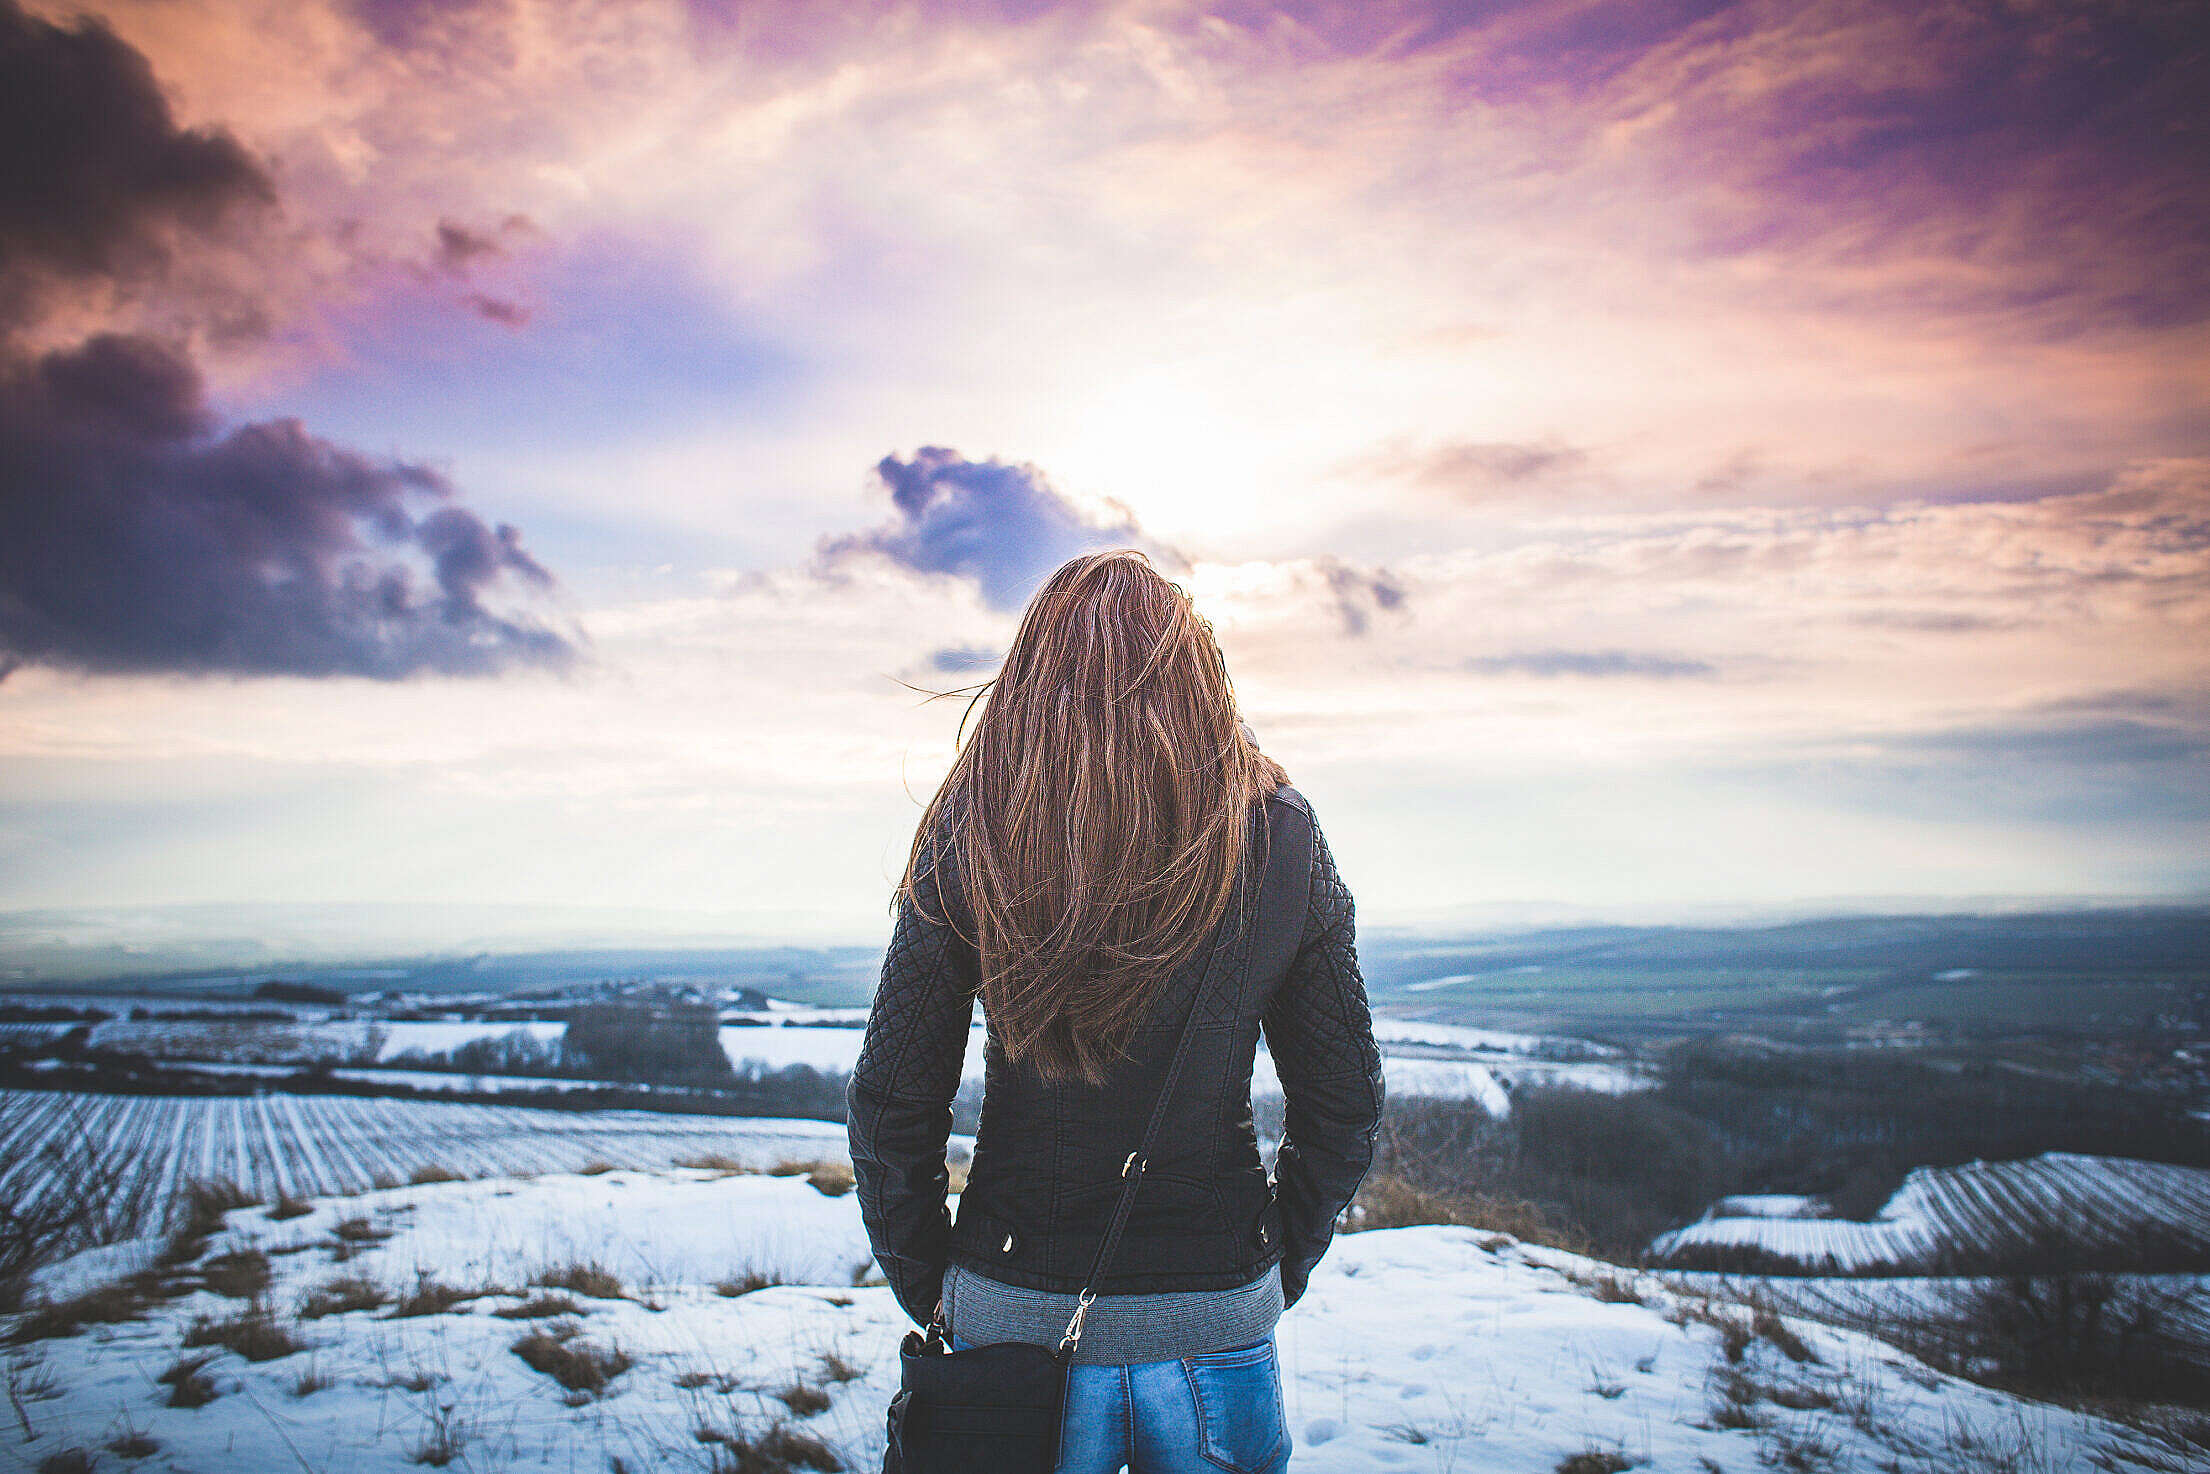 Girl from Behind with Fantasy Sky Free Stock Photo